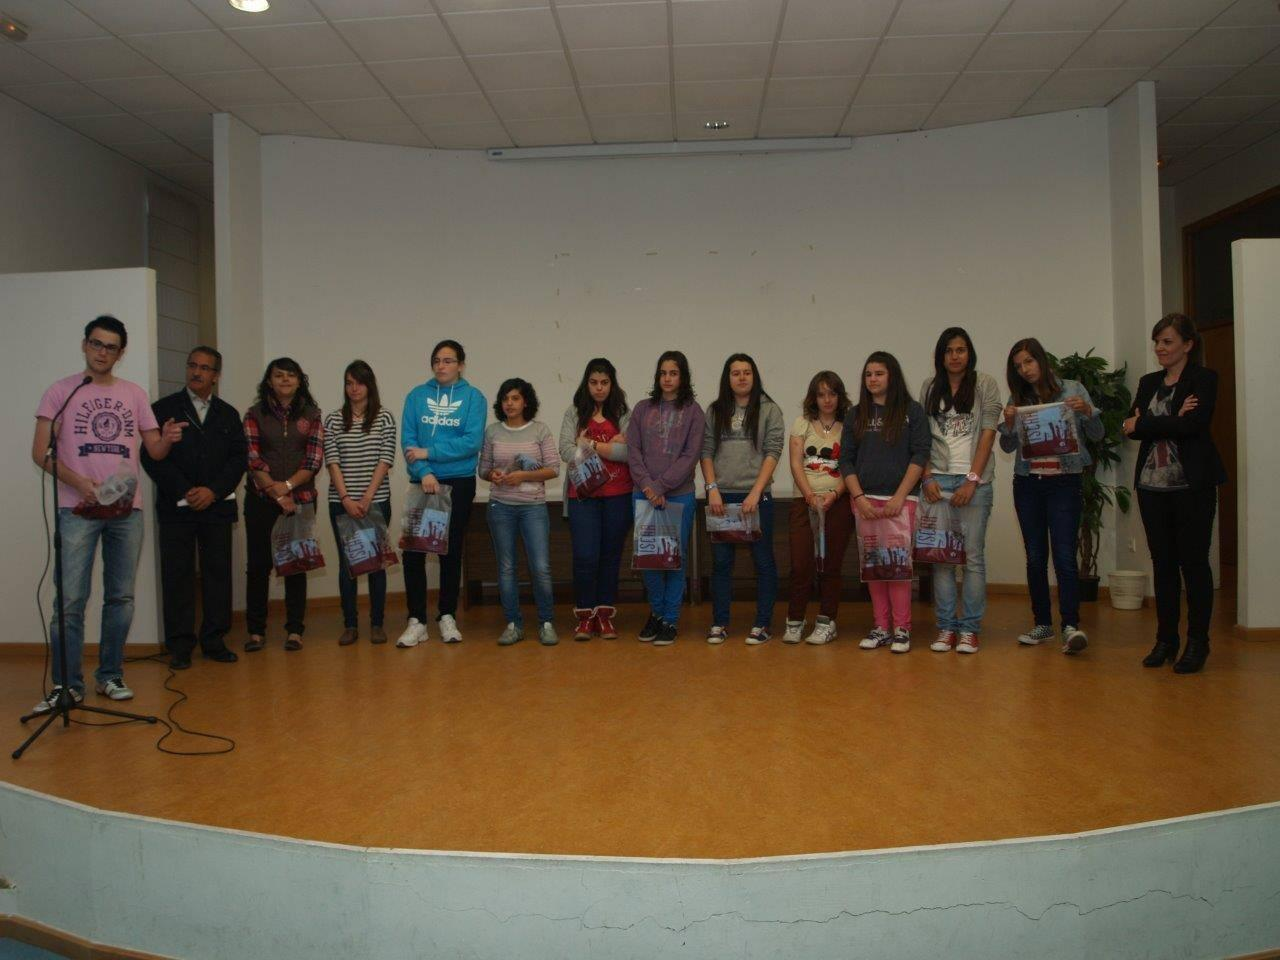 Homenaje del Ayuntamiento de &Iacute;scar a su campeonas de baloncesto y gimnasia r&iacute;tmica